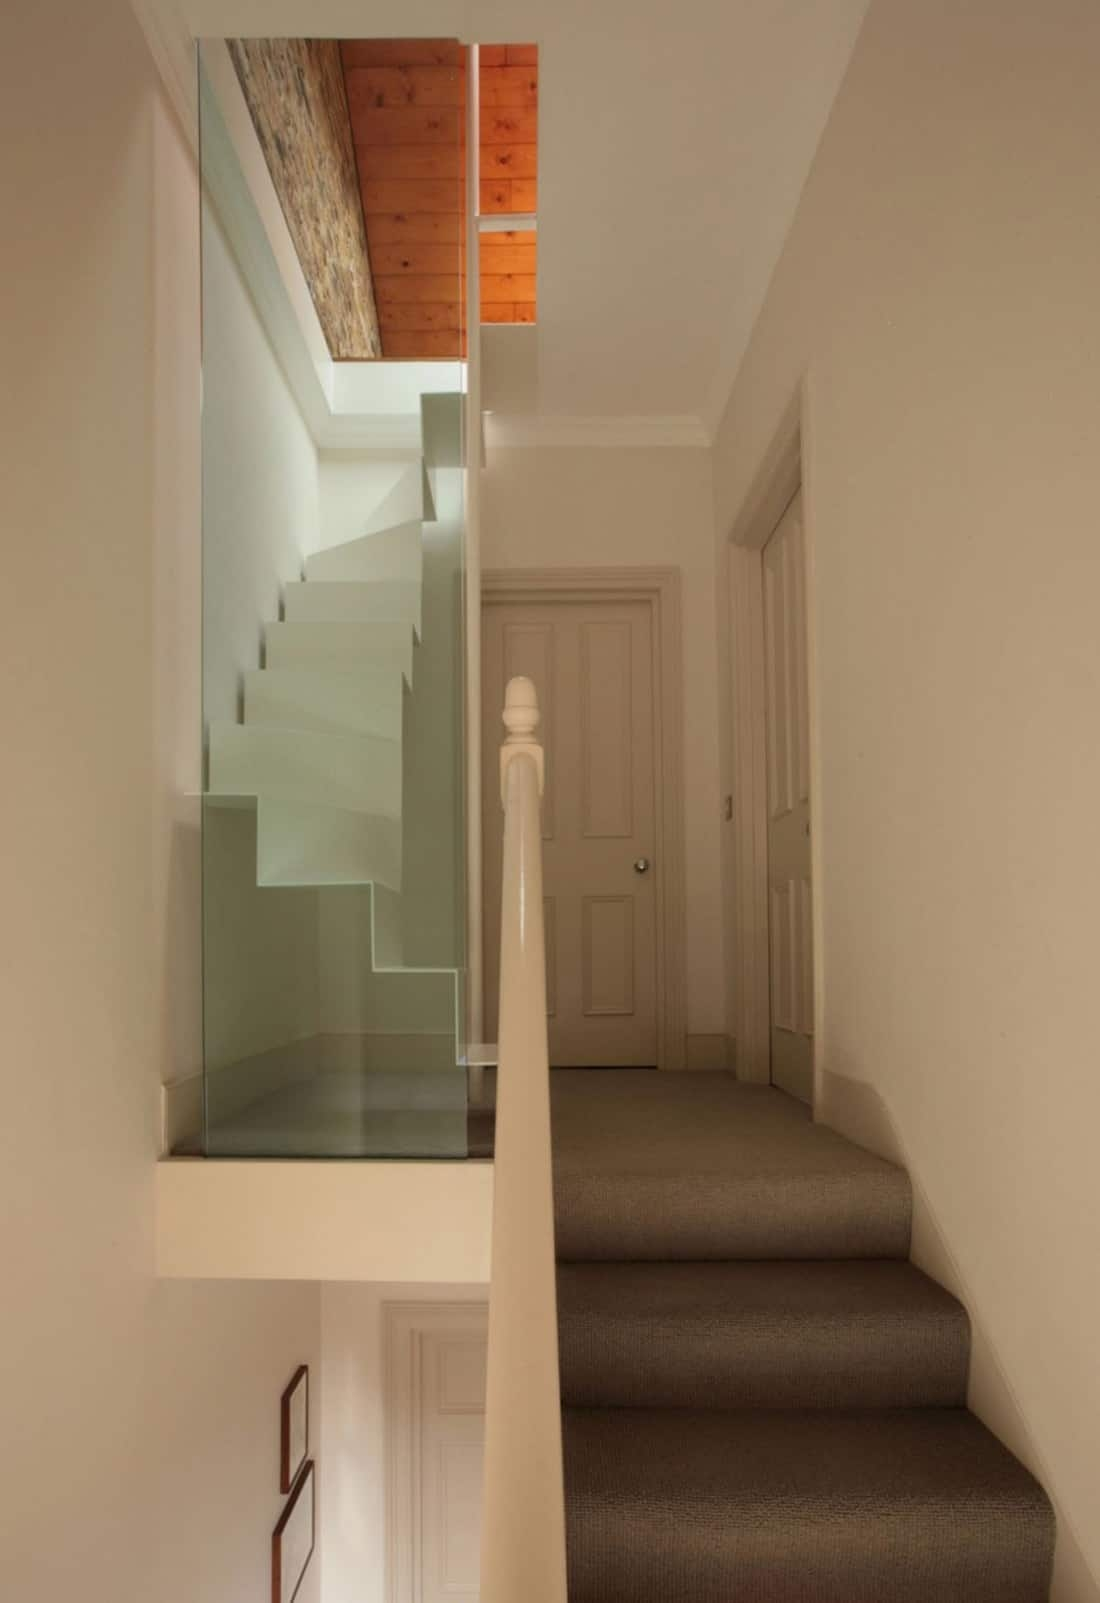 Unique And Creative Staircase Designs For Modern Homes | Staircase For Small Area | Beautiful | Spiral | Compact | Low Cost | Living Room